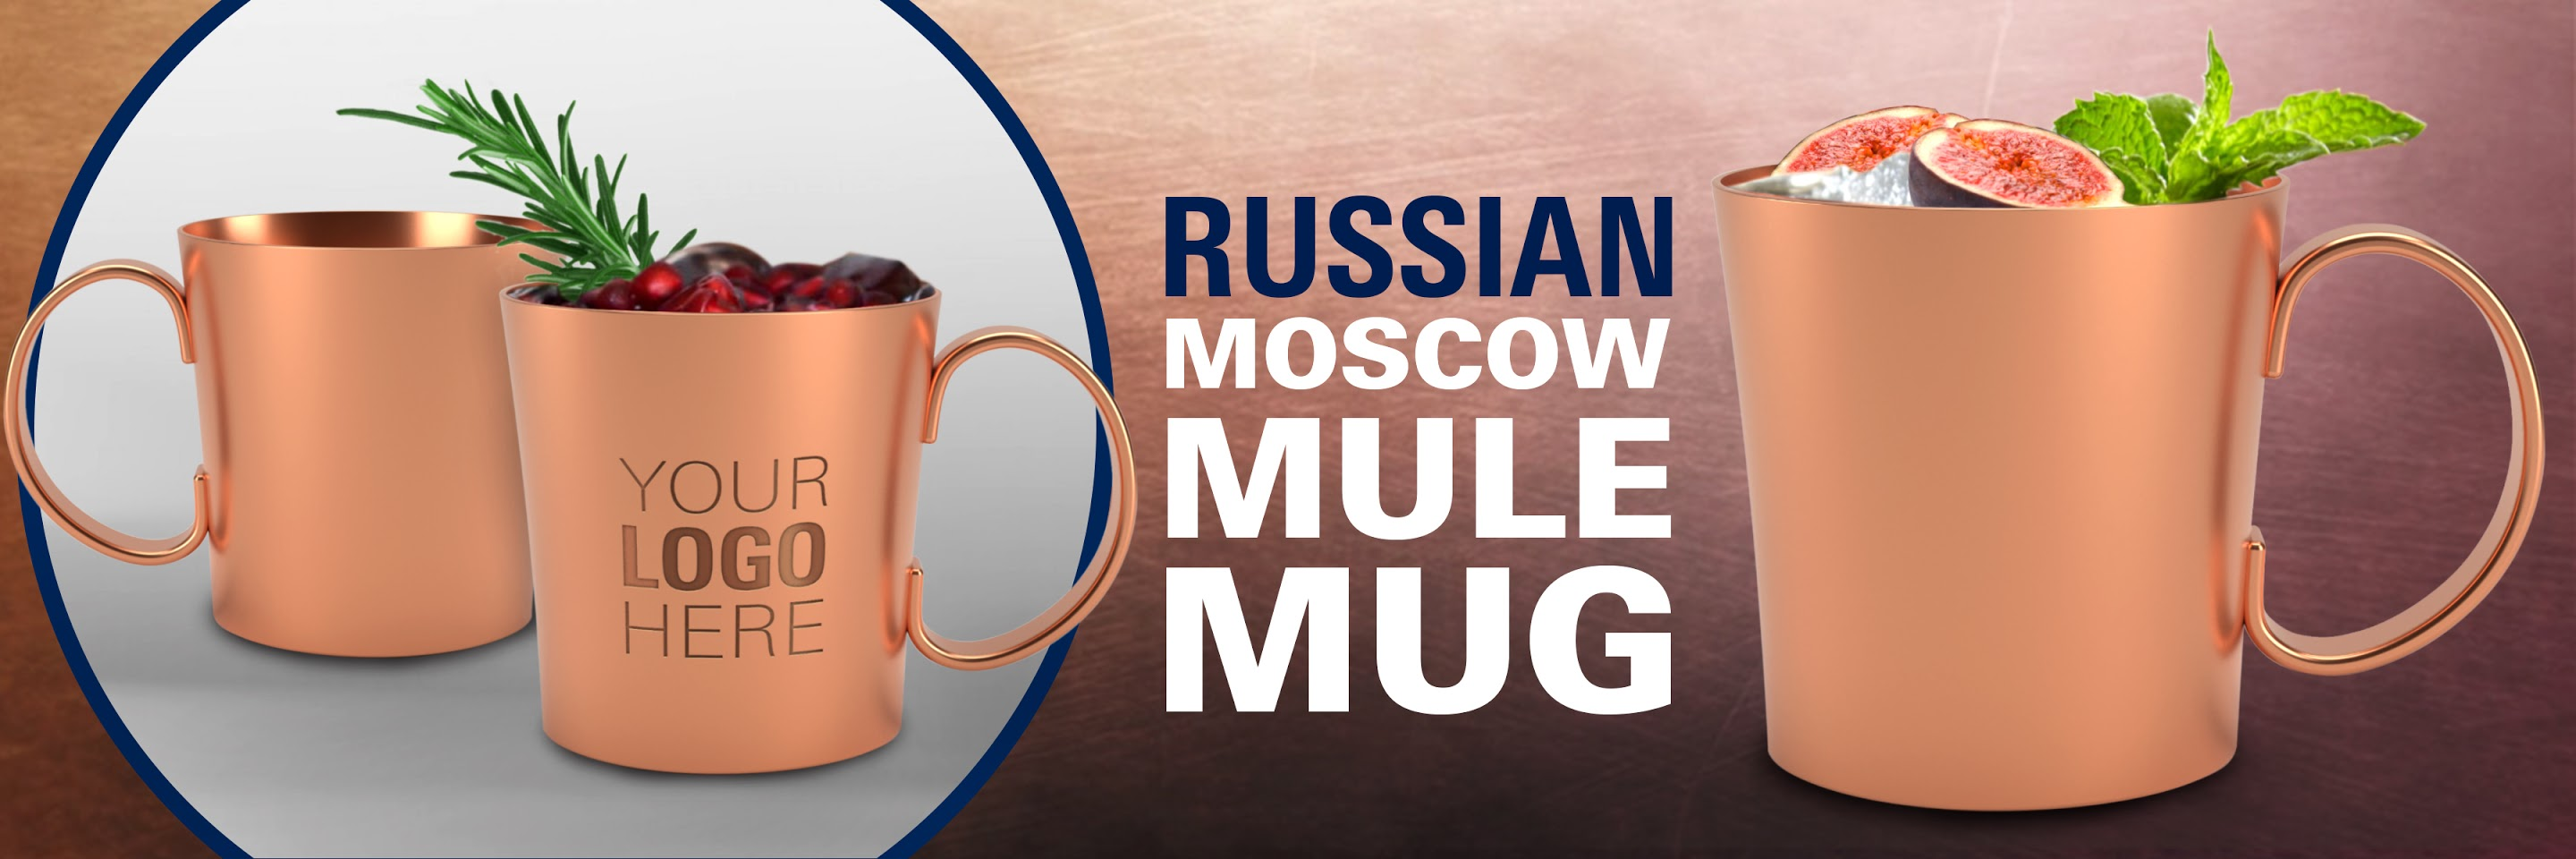 Russian Copper Moscow Mule Mug